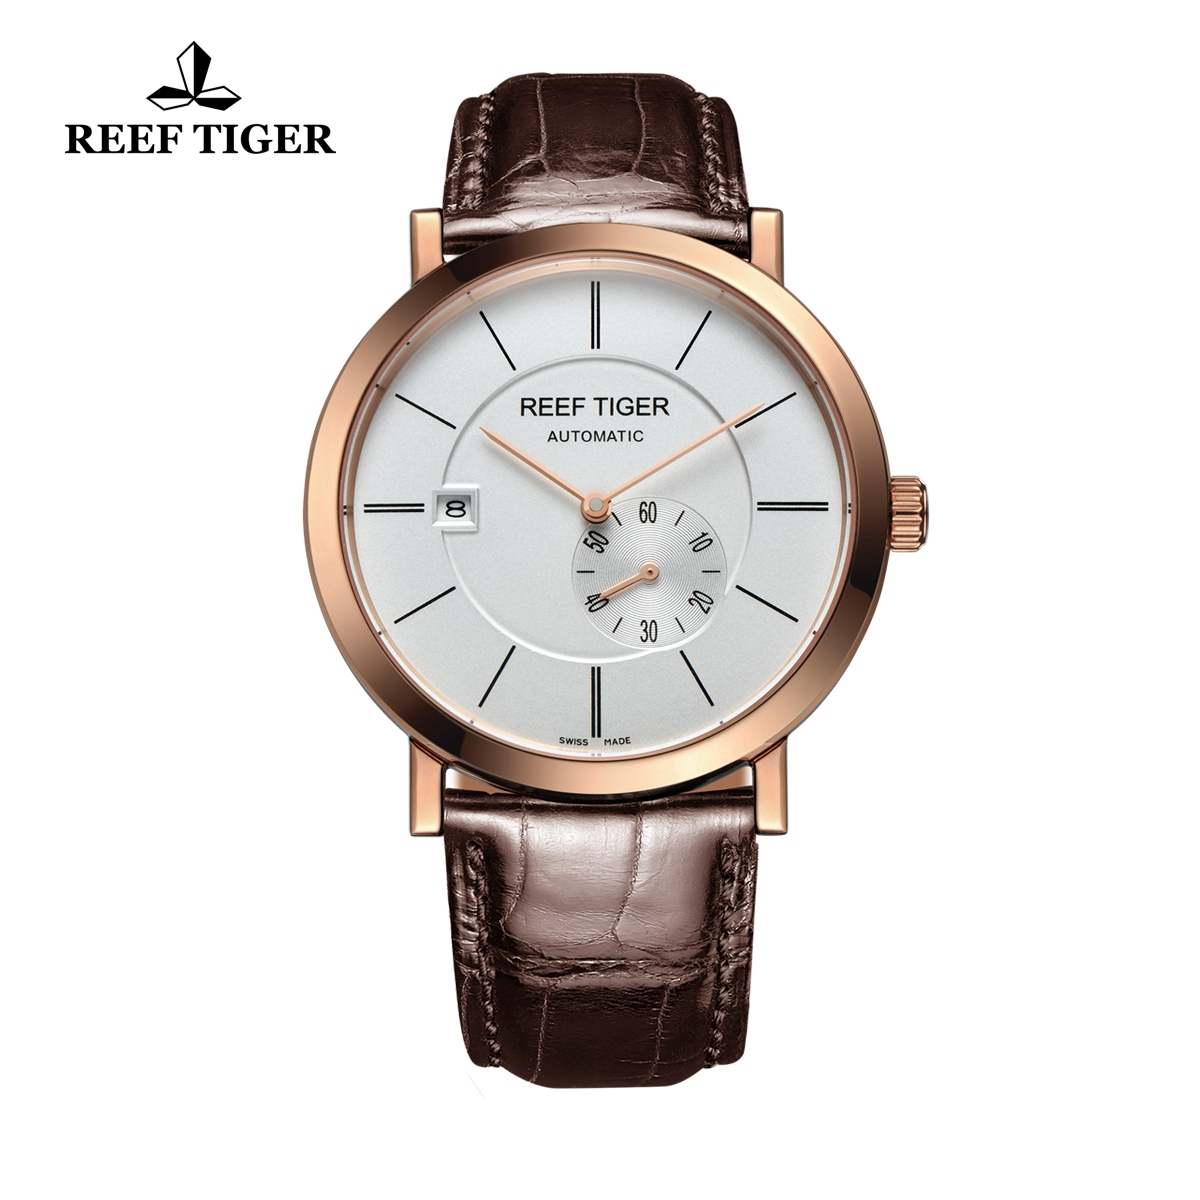 Reef Tiger Business Watch Ultra Thin Rose Gold White Dial Automatic Watch RGA161-PWS